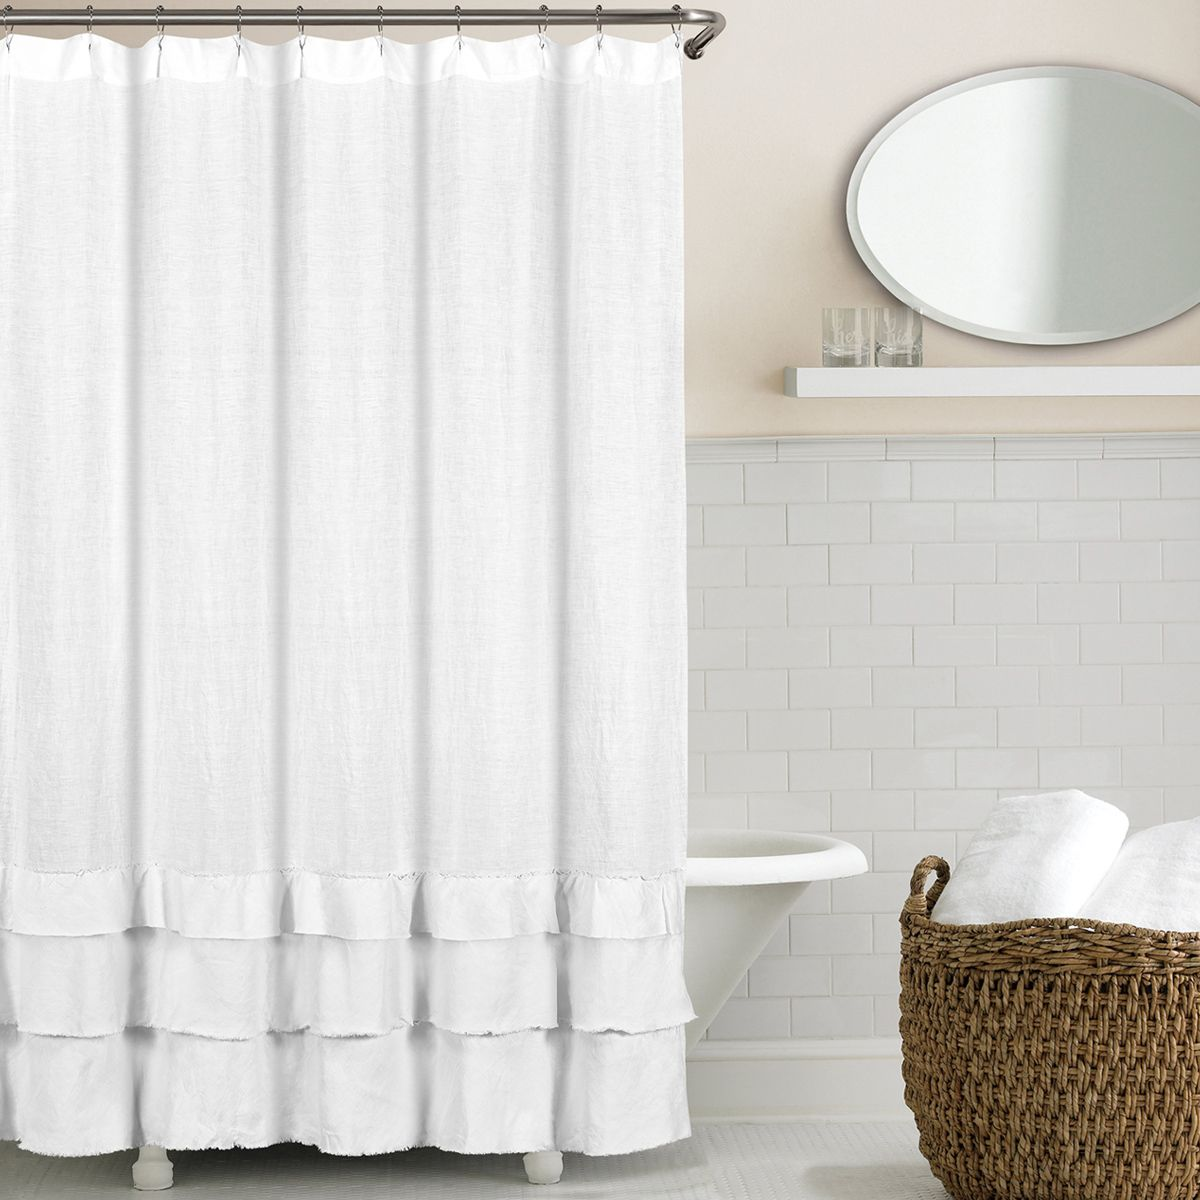 New Ruffled 100 Linen Shower Curtains Feature Three Tiers Of Raw Edge Linen Ruffles Made With Our Signature Washed Belgian Linen Fabric I Home Decor Wayfair